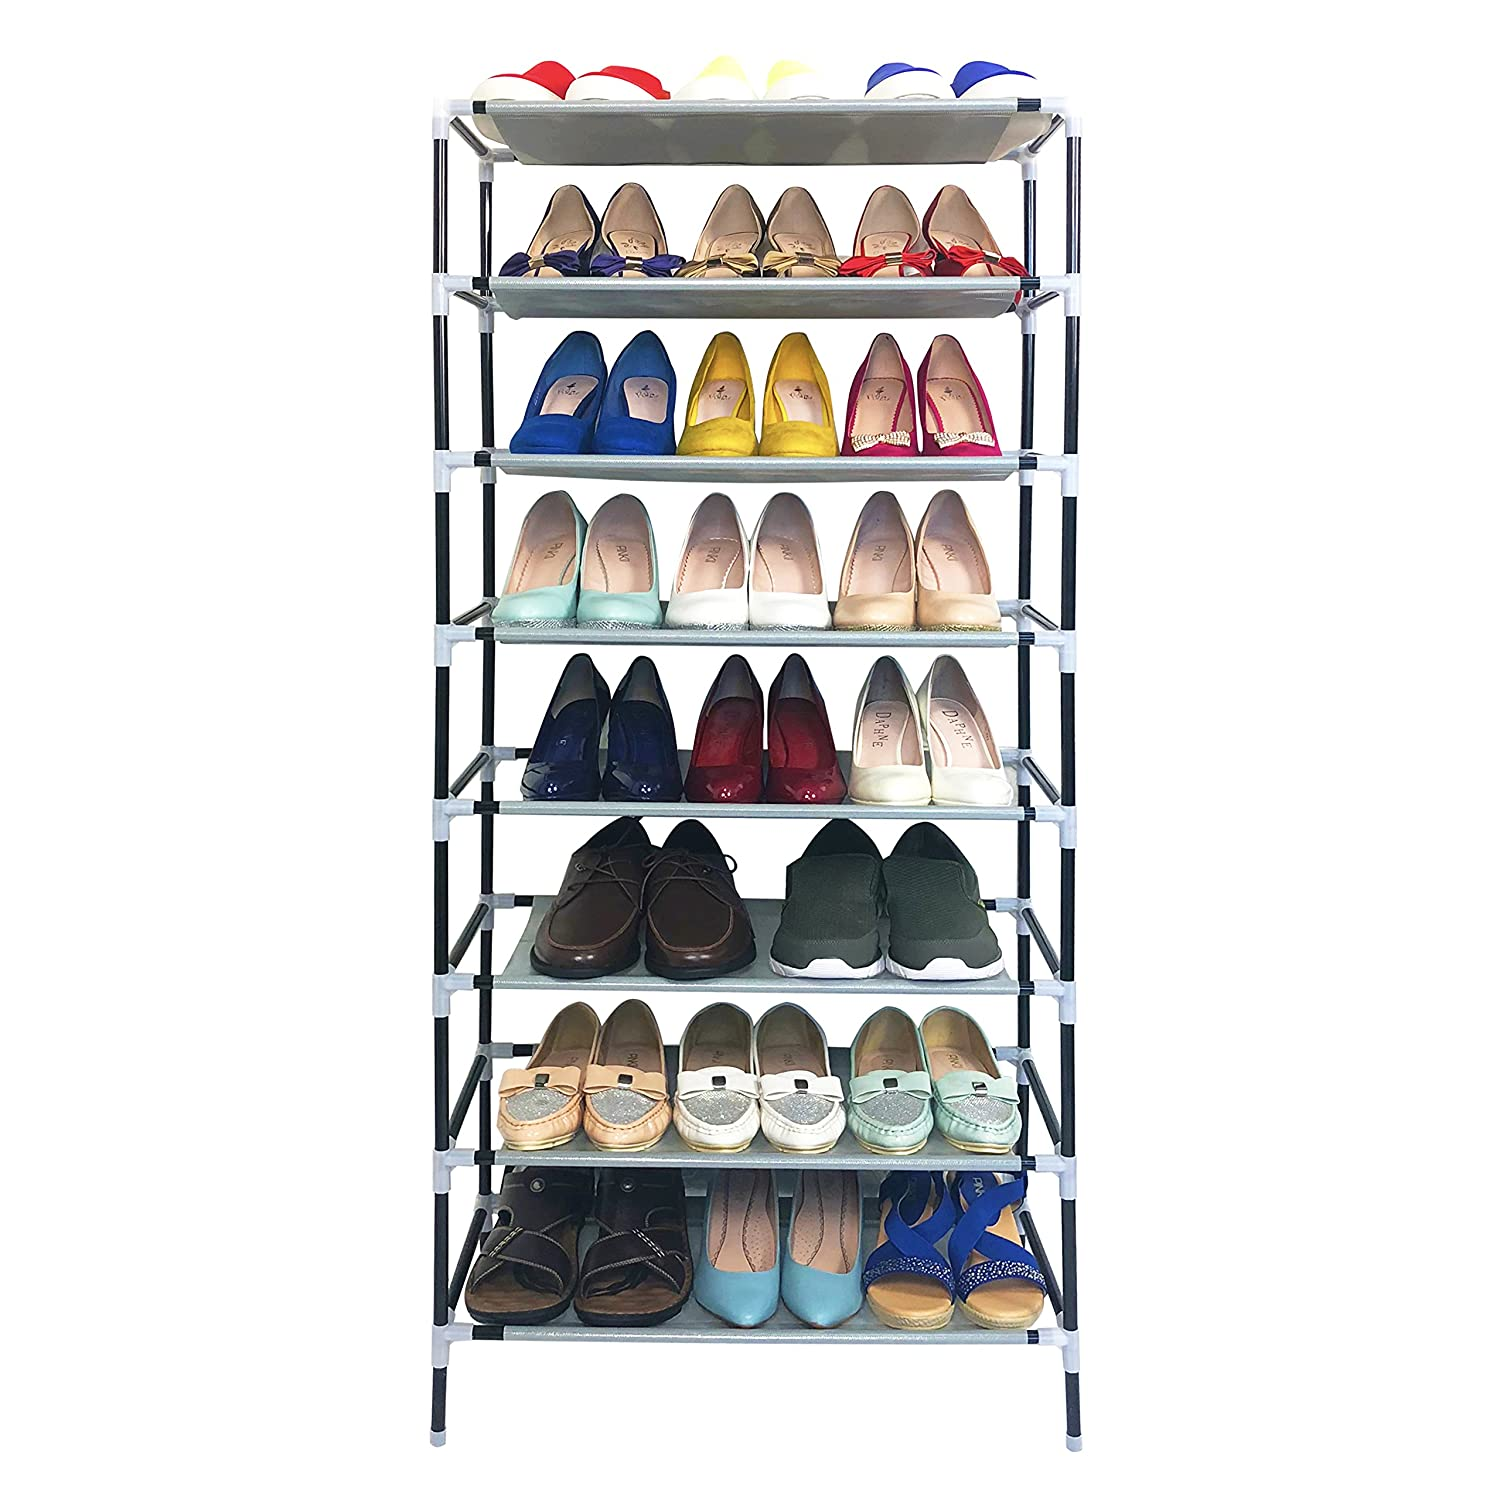 AcornFort® S-109 4 Tiers Adjustable Shoe Storage Shoe Rack Organiser Shelf Hold Stand for 12 Pairs , Space Saving , Easy Assemble YOYO INFO UK LTD